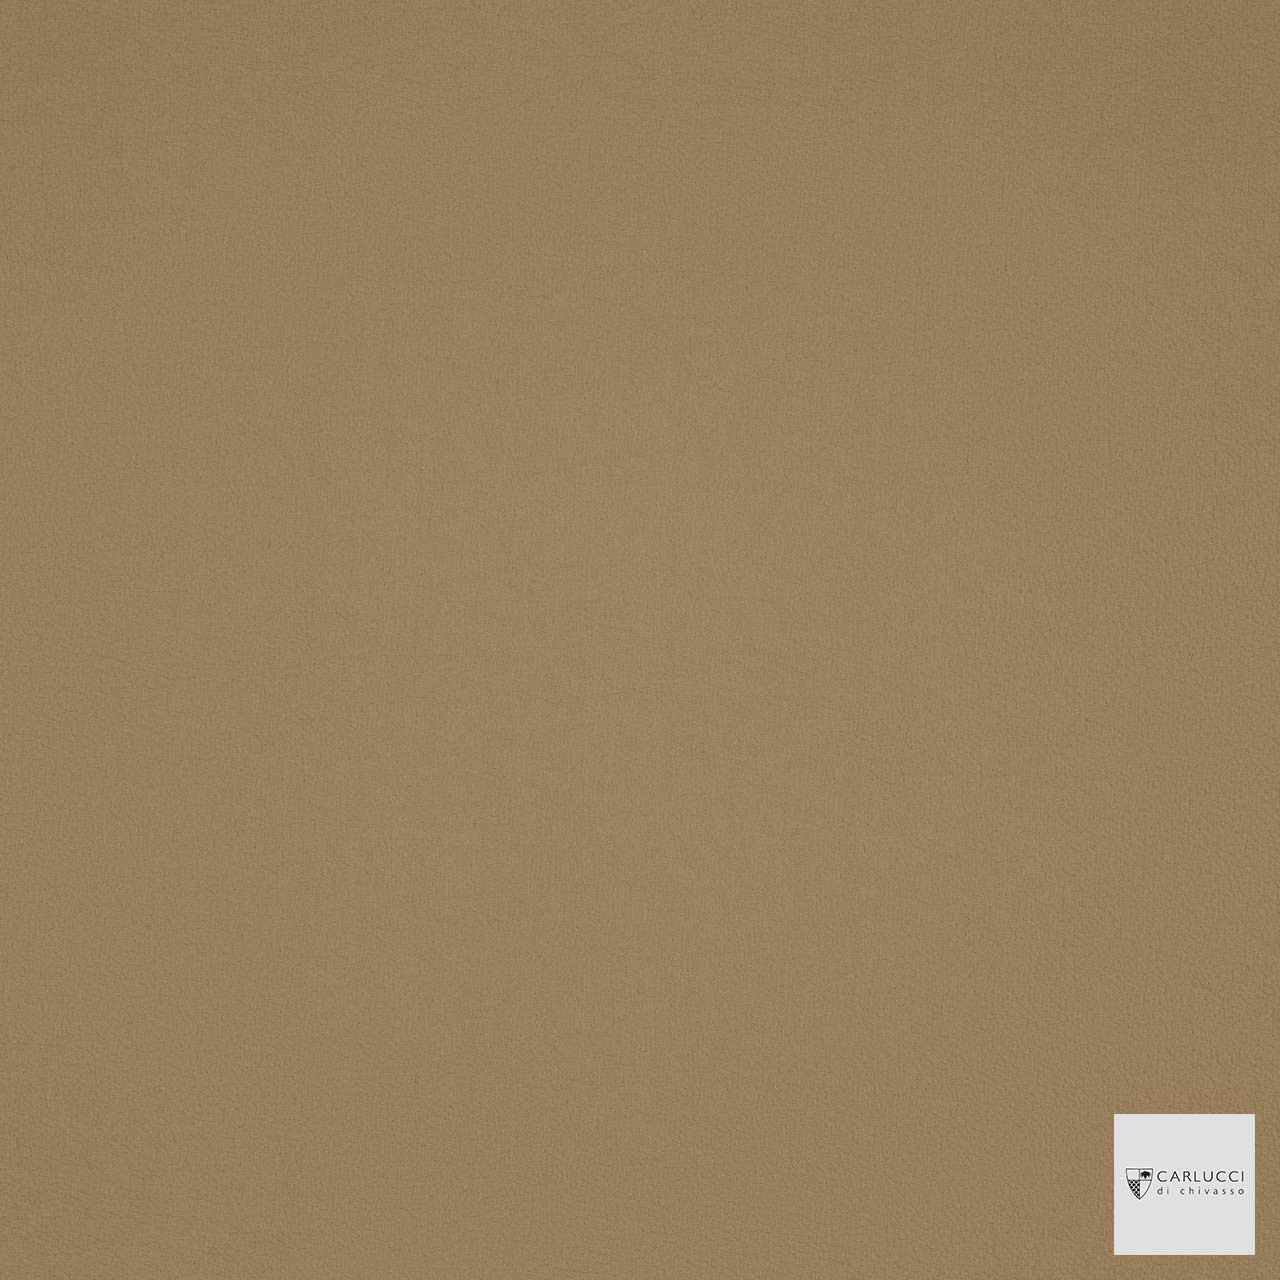 Carlucci - Squad - Ca1348-077  | Upholstery Fabric - Brown, Plain